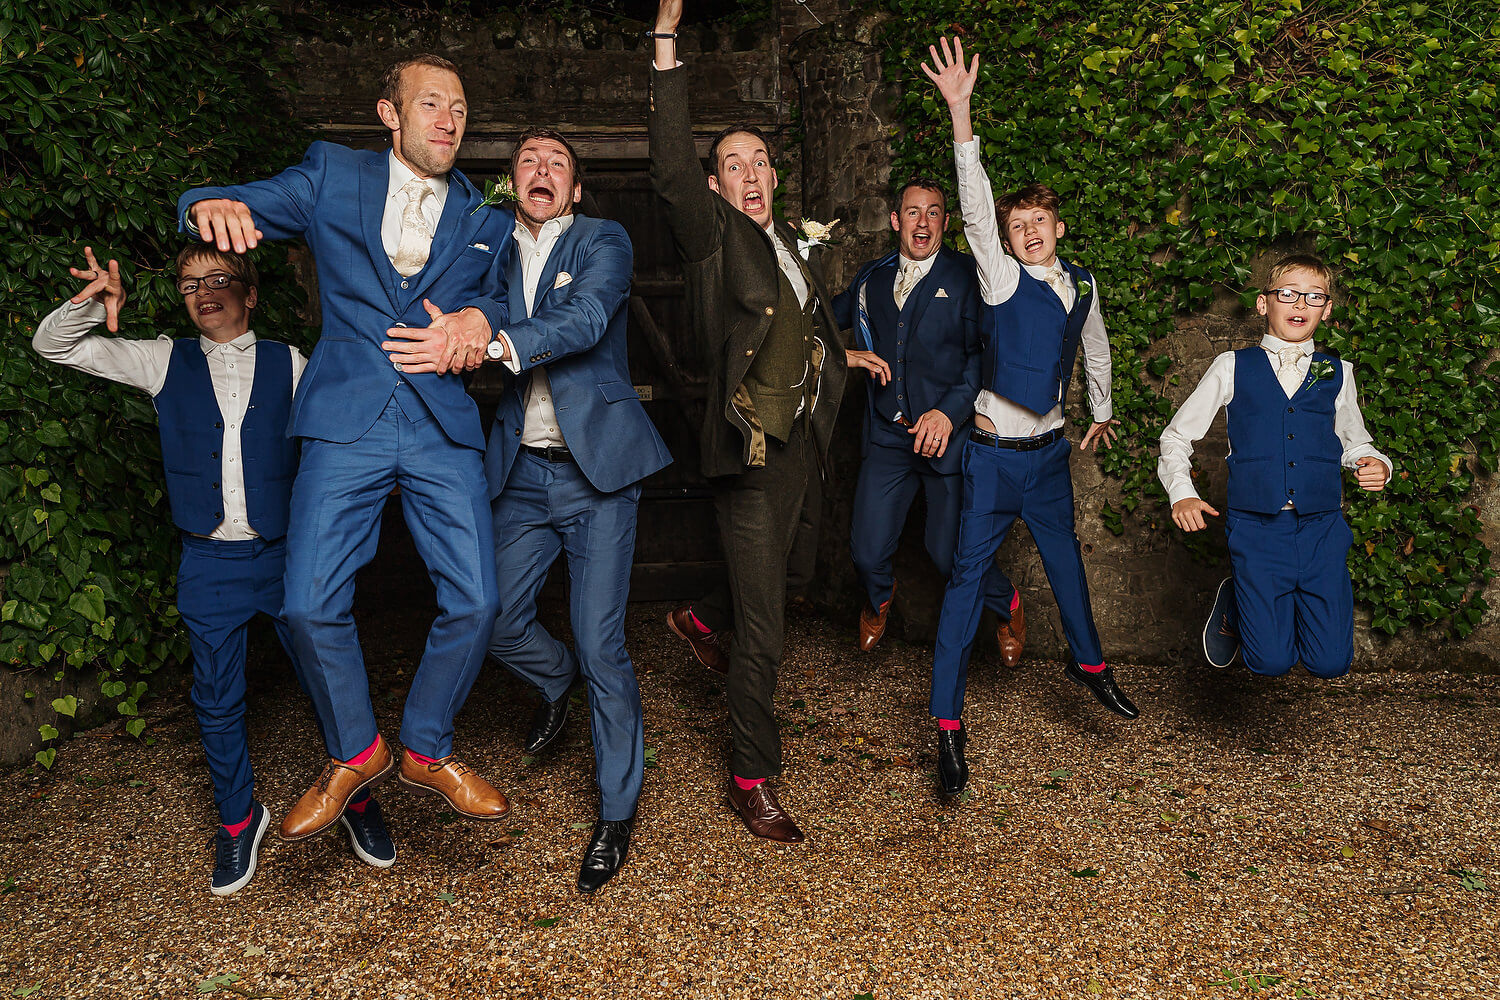 groom jumping at ramster hall wedding